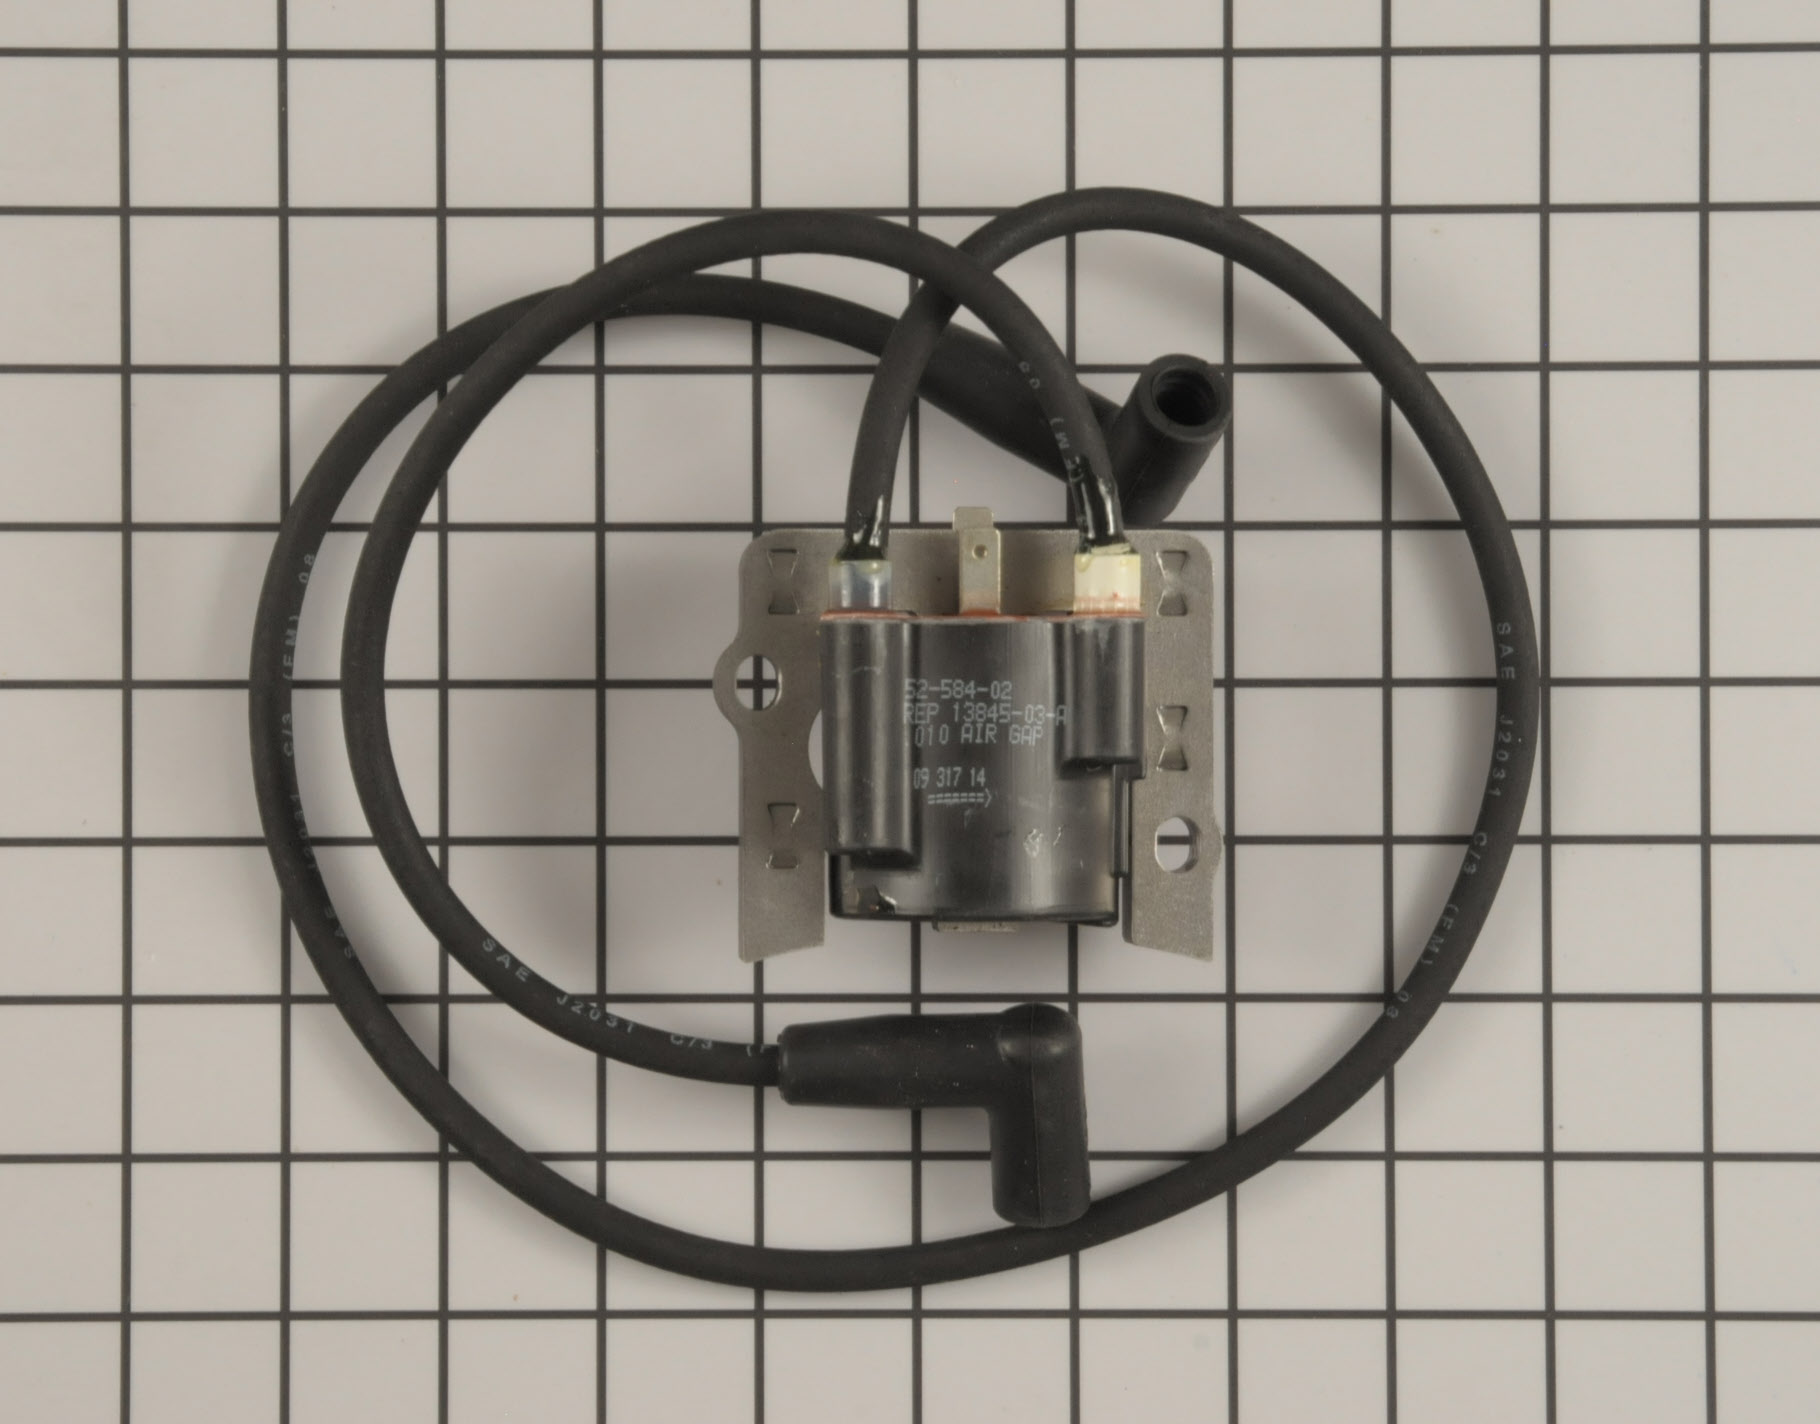 Exmark Lawn Mower Part # 52 584 02-S - Ignition Coil photo